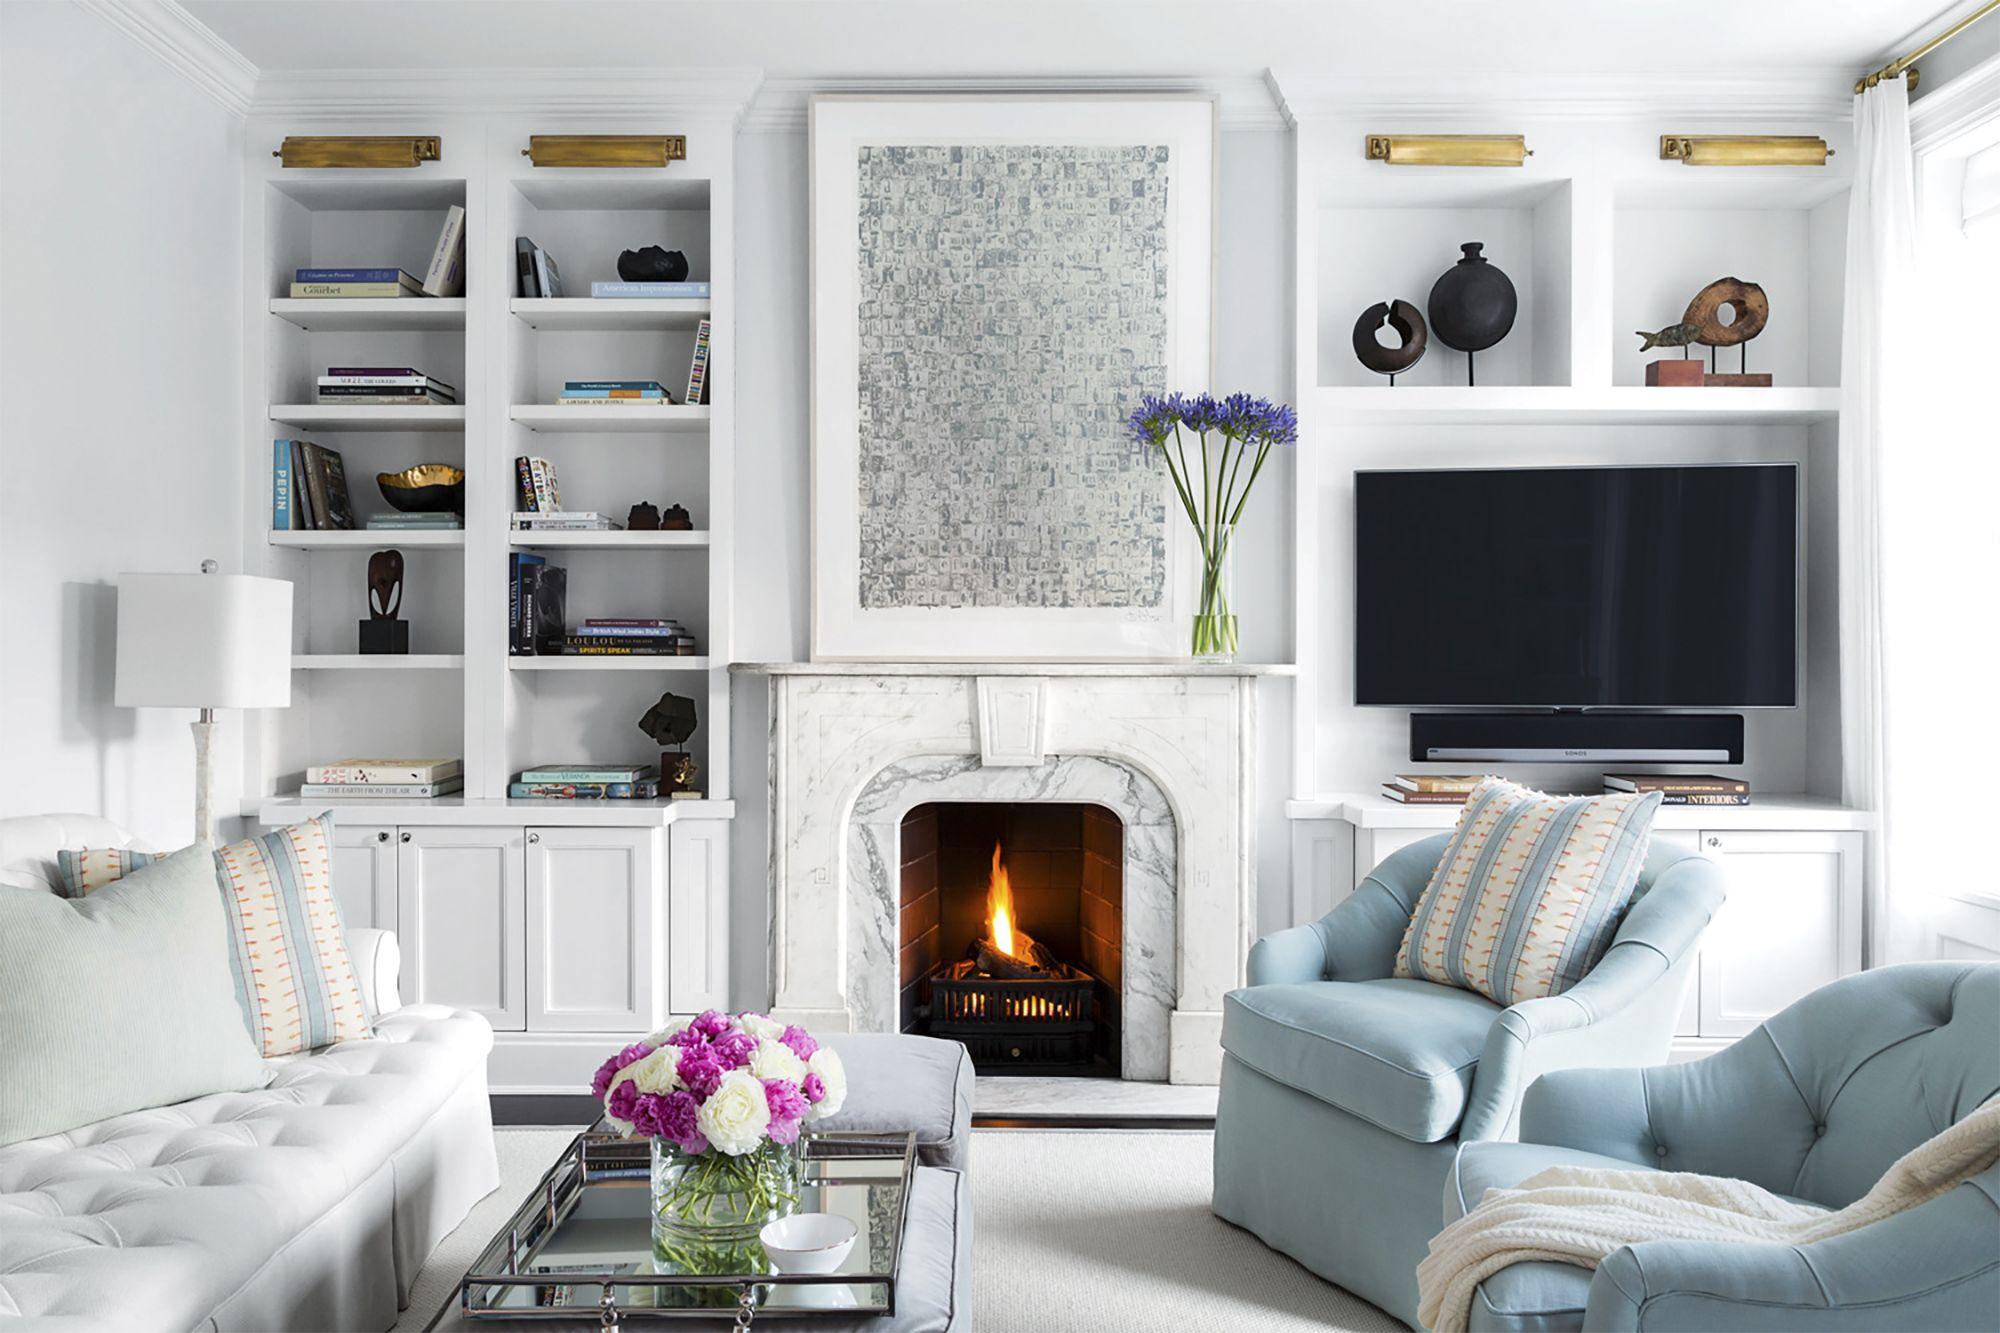 7 Ideas To Decorate Your Living Room With Little Money